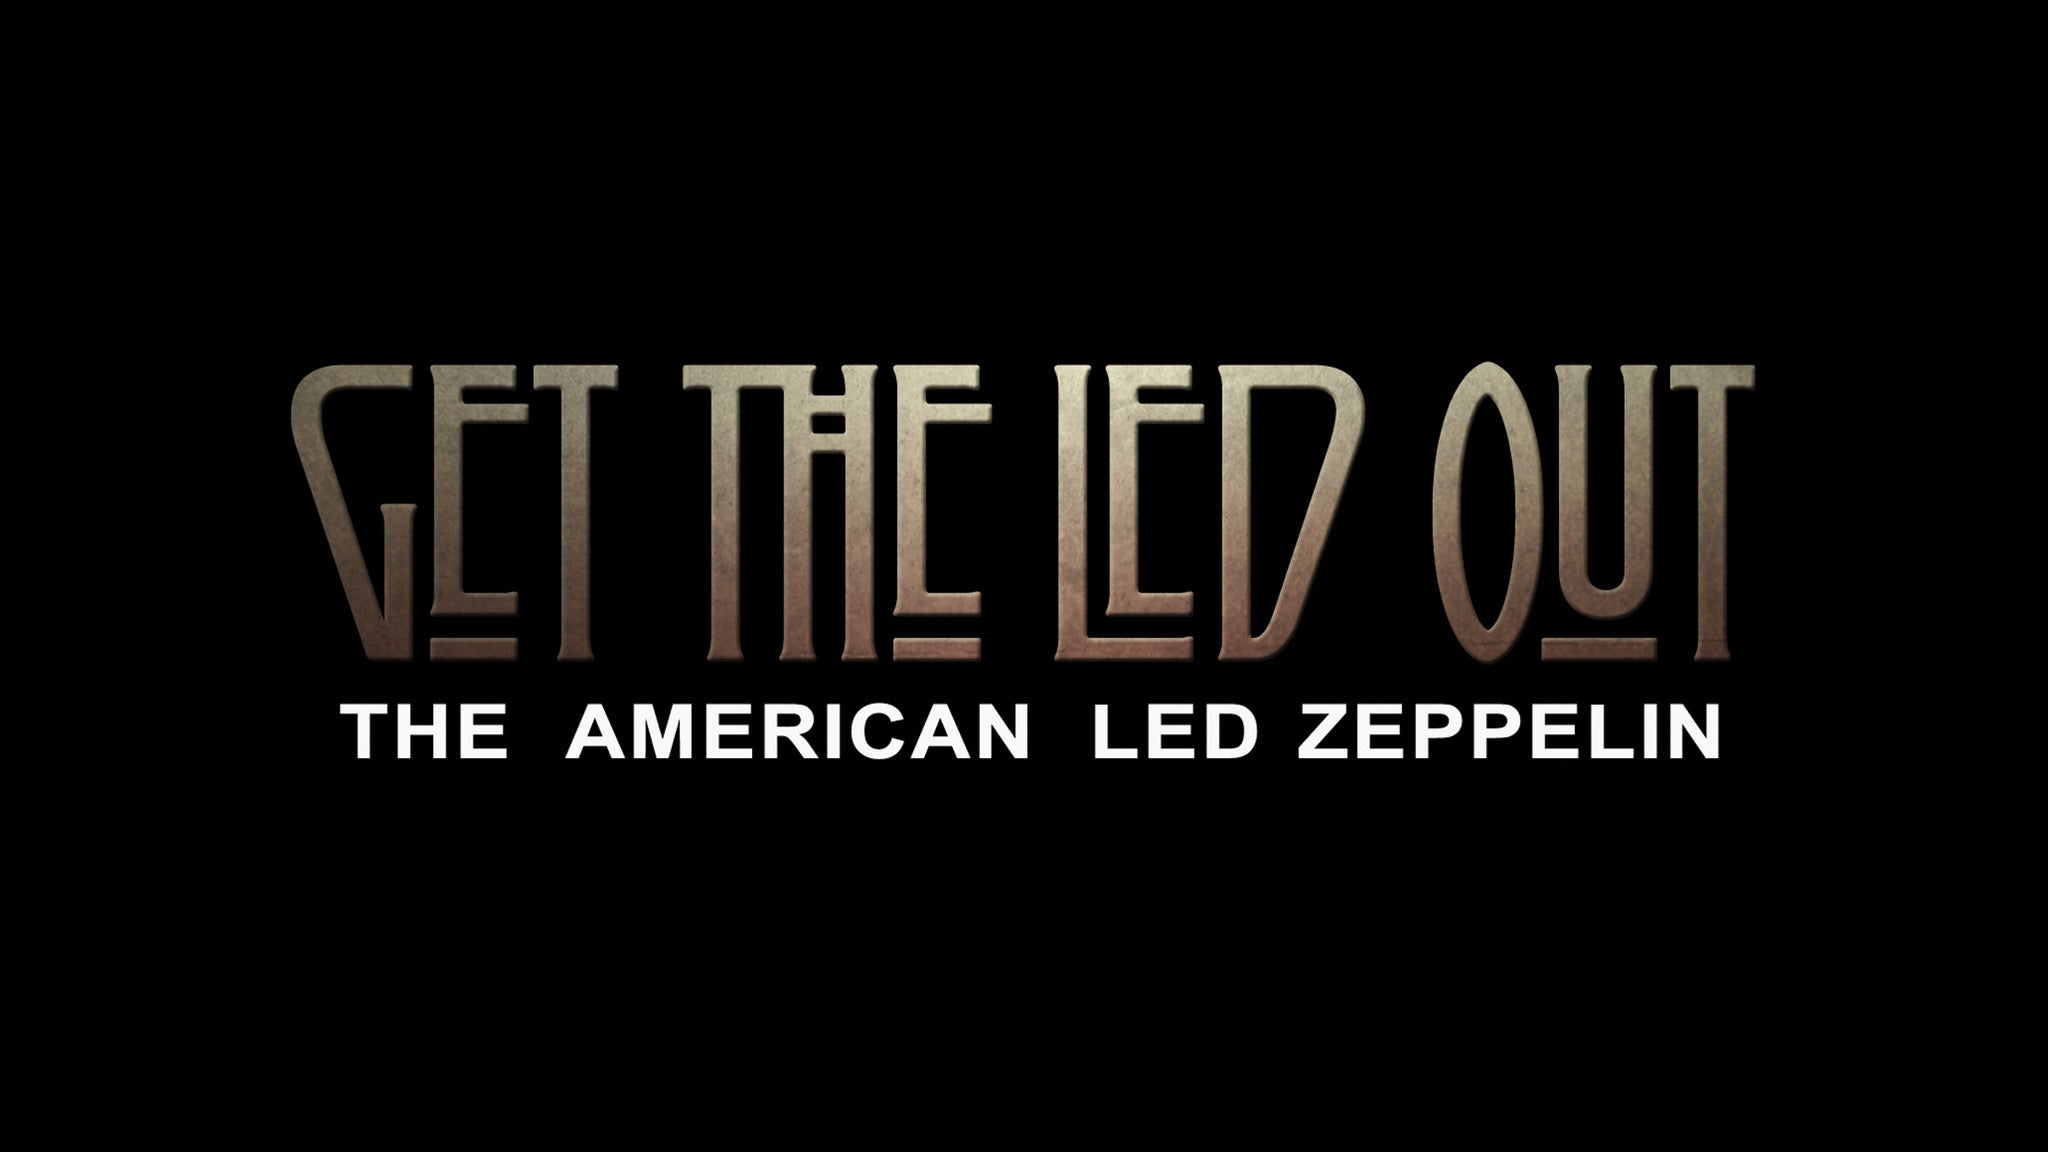 Get the Led Out at Key West Theater